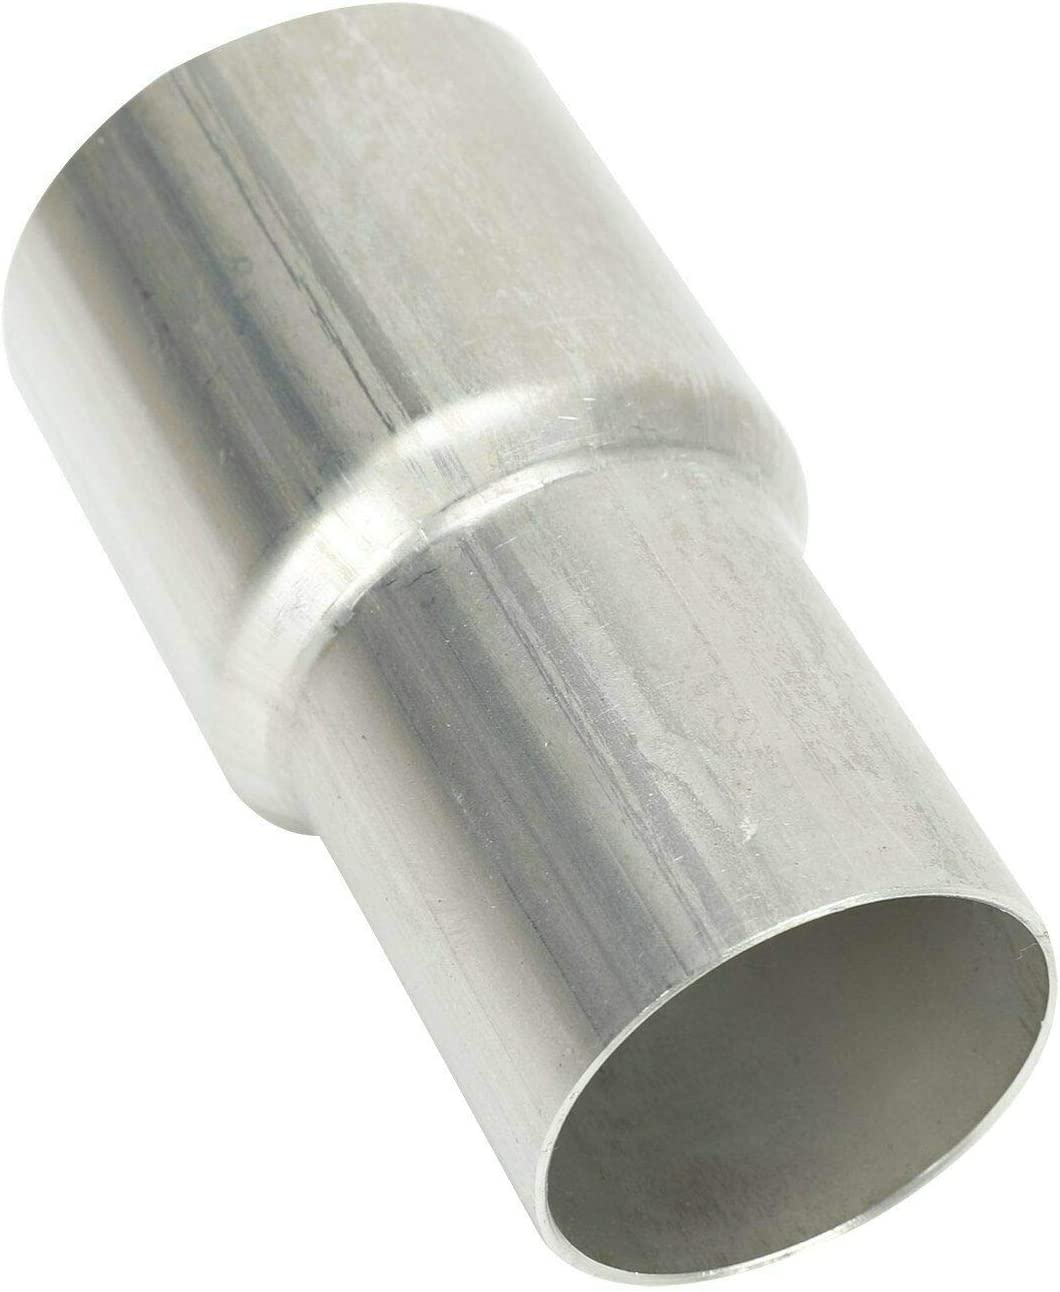 """BLACKHORSE-RACING 1.25 1 1//4/"""" ID to 1.5 1 1//2/"""" ID Exhaust Pipe to Pipe Adapter Reducer Universal"""